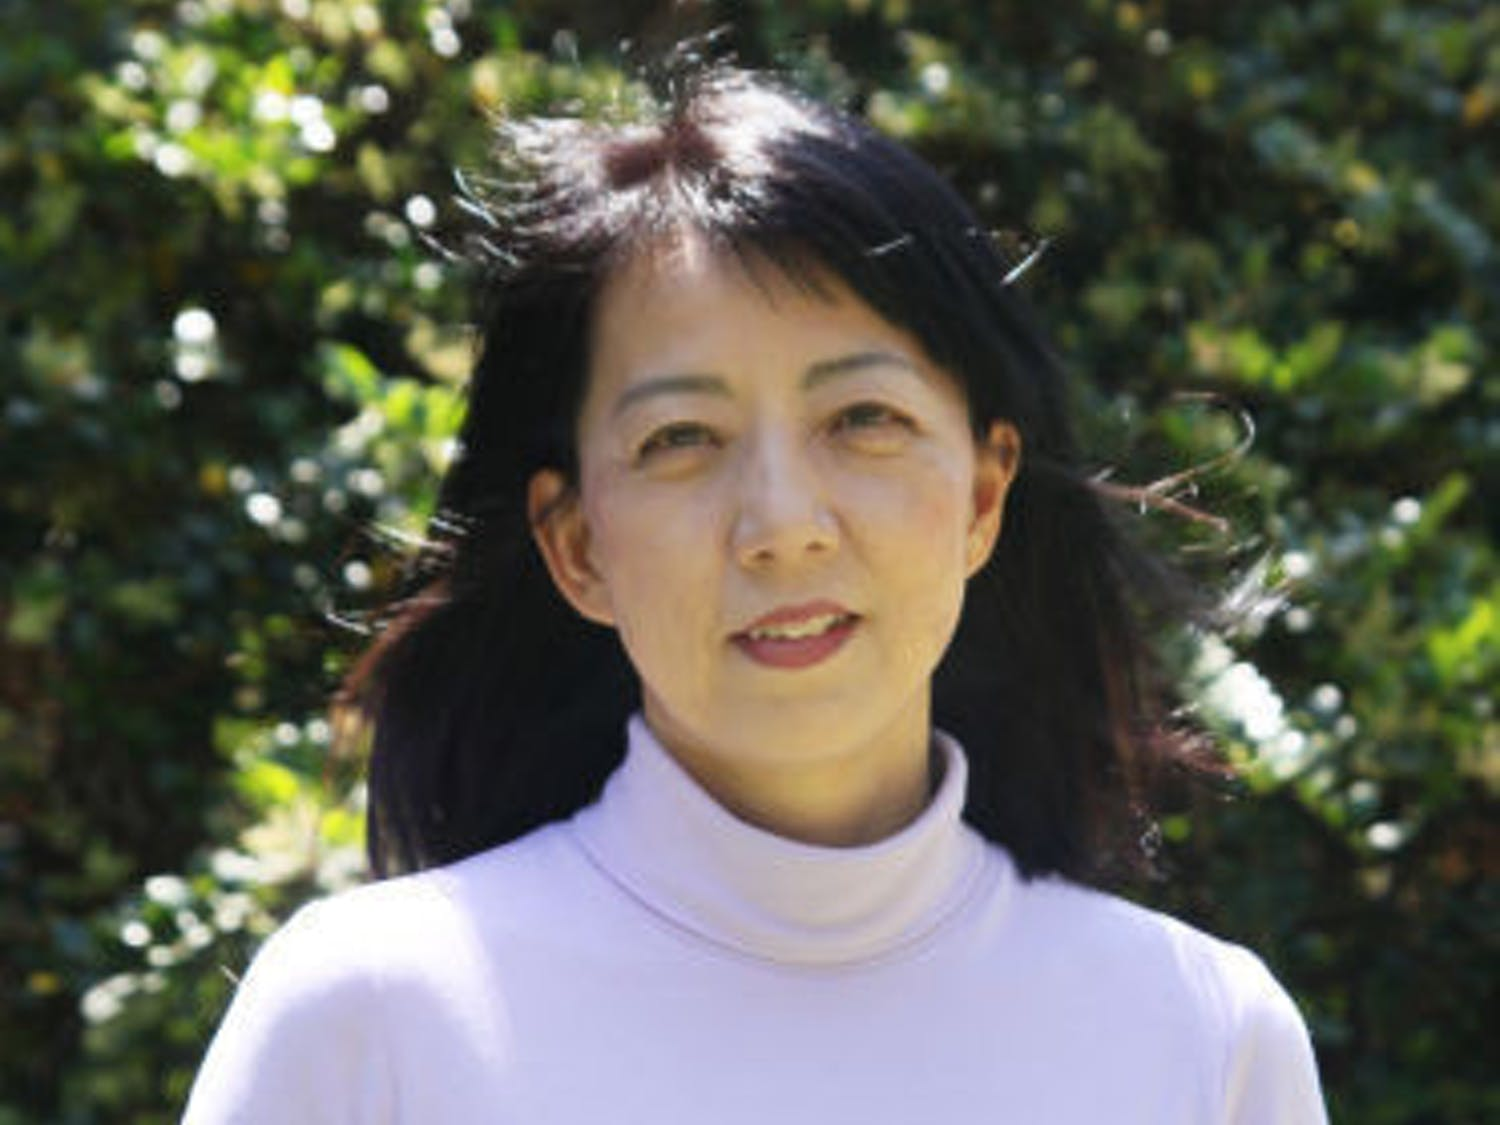 Glee Club and choir director Mihoko Tsutsumi will lead her final performance at 7:30 p.m. in the University Auditorium. It's free and will feature more than 100 performers.